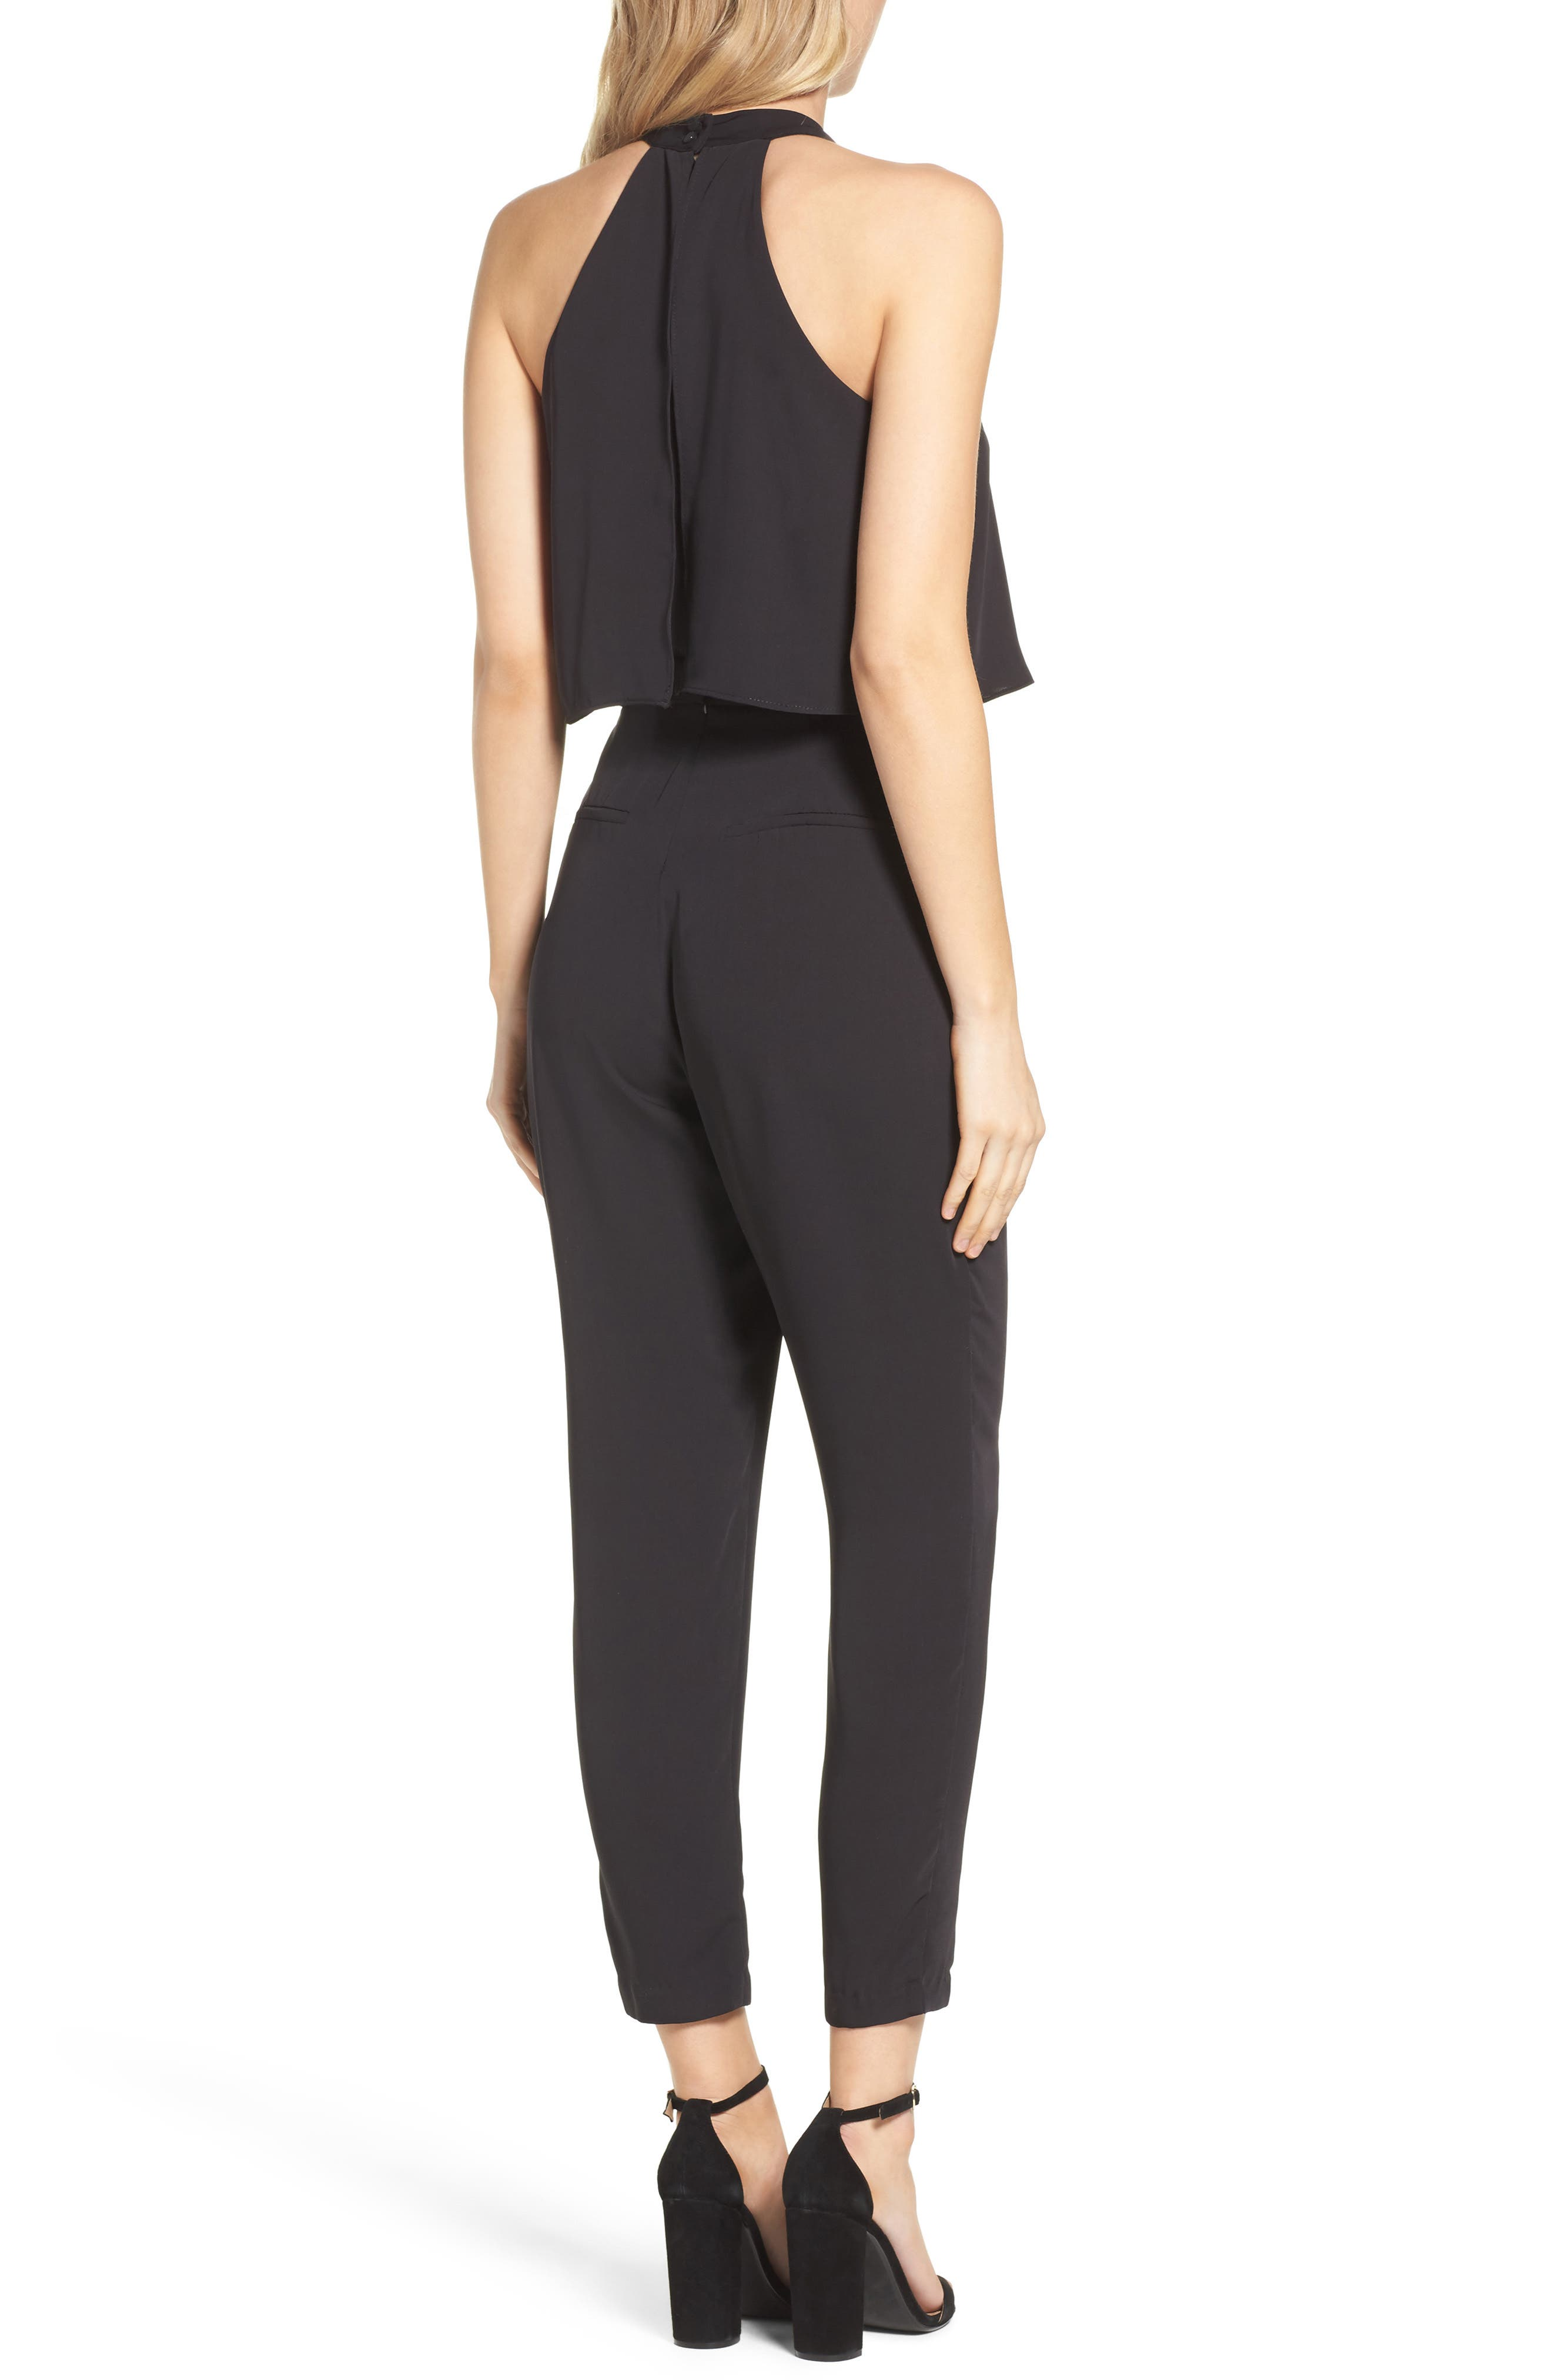 Nayden Popover Jumpsuit,                             Alternate thumbnail 2, color,                             Black